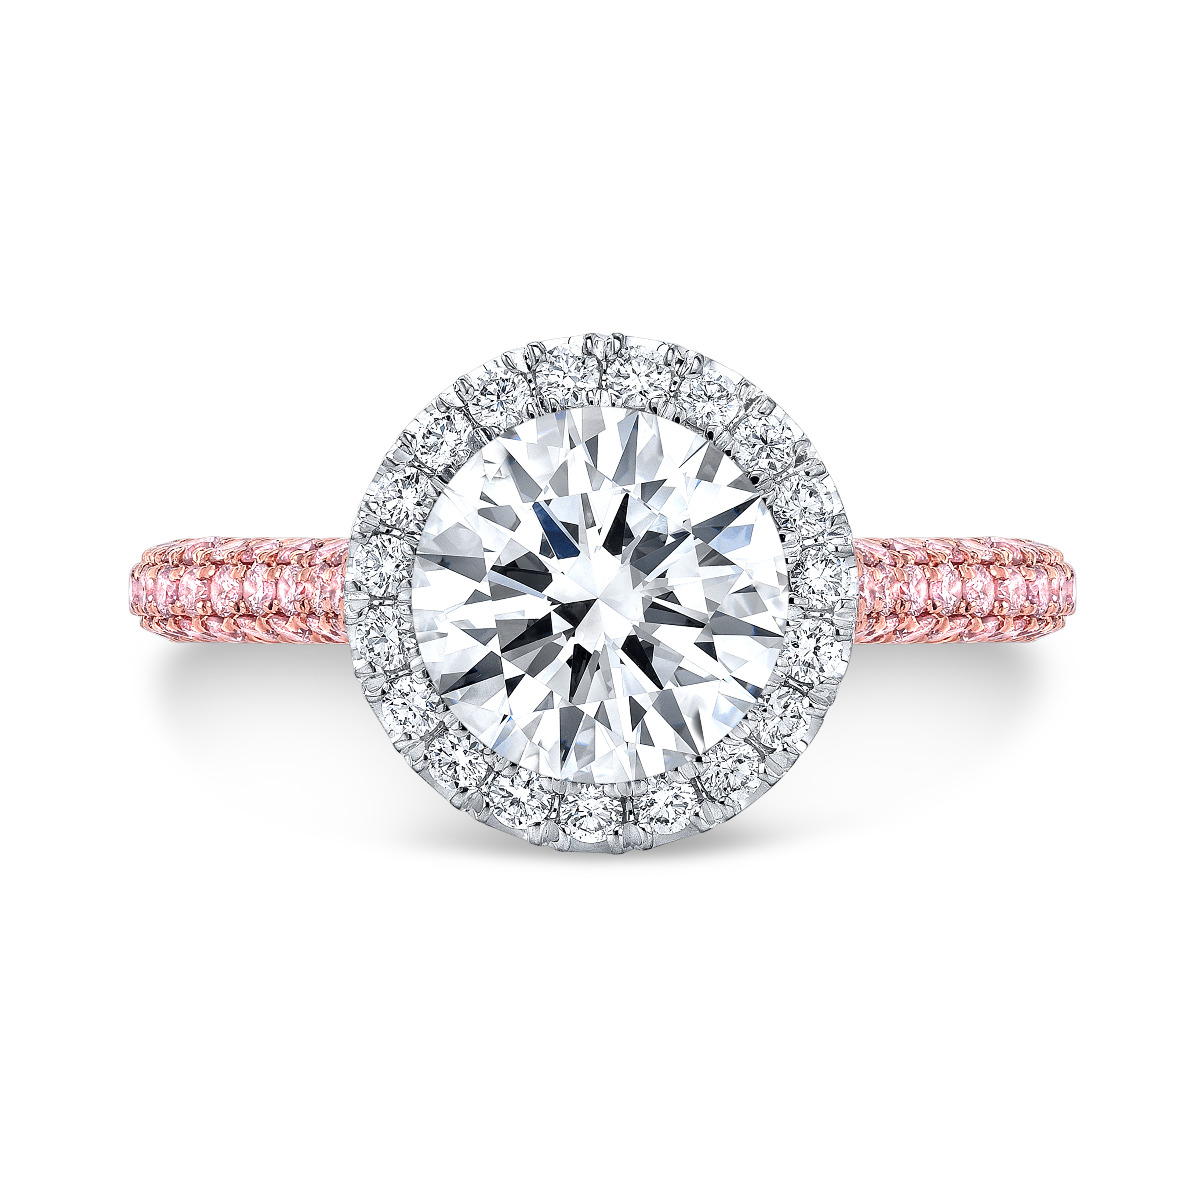 Halo Prongless 3 Row Micro Pave Pink Diamond Engagement Ring